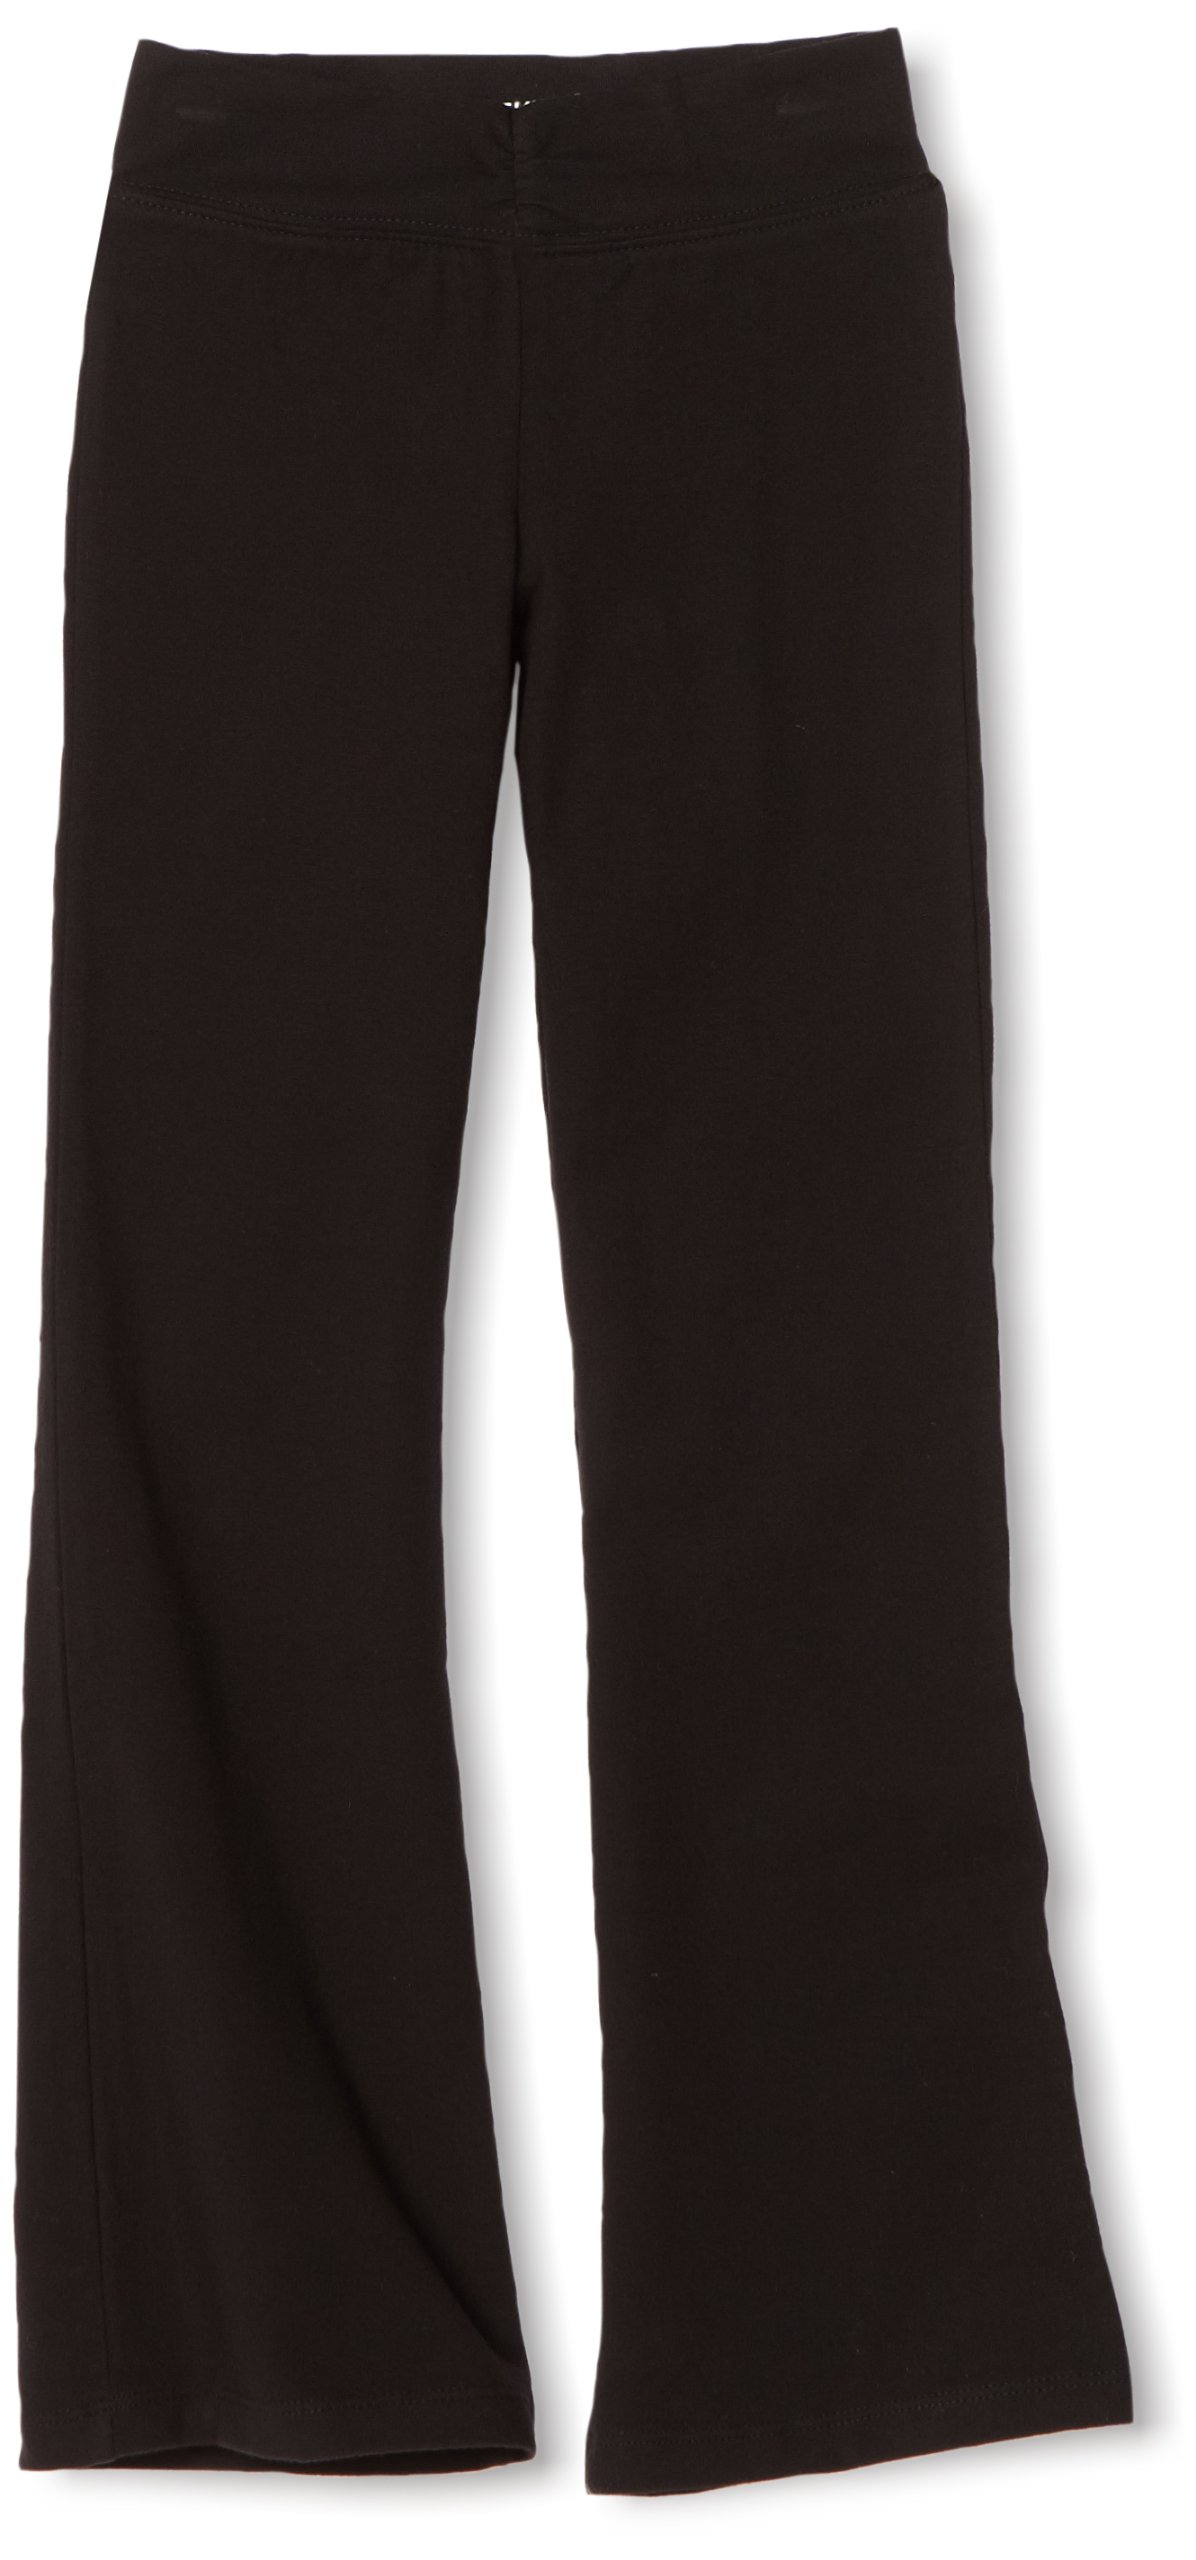 Danskin Little Girls' Shir Bootleg Pant, Black, Toddler (2T-4)